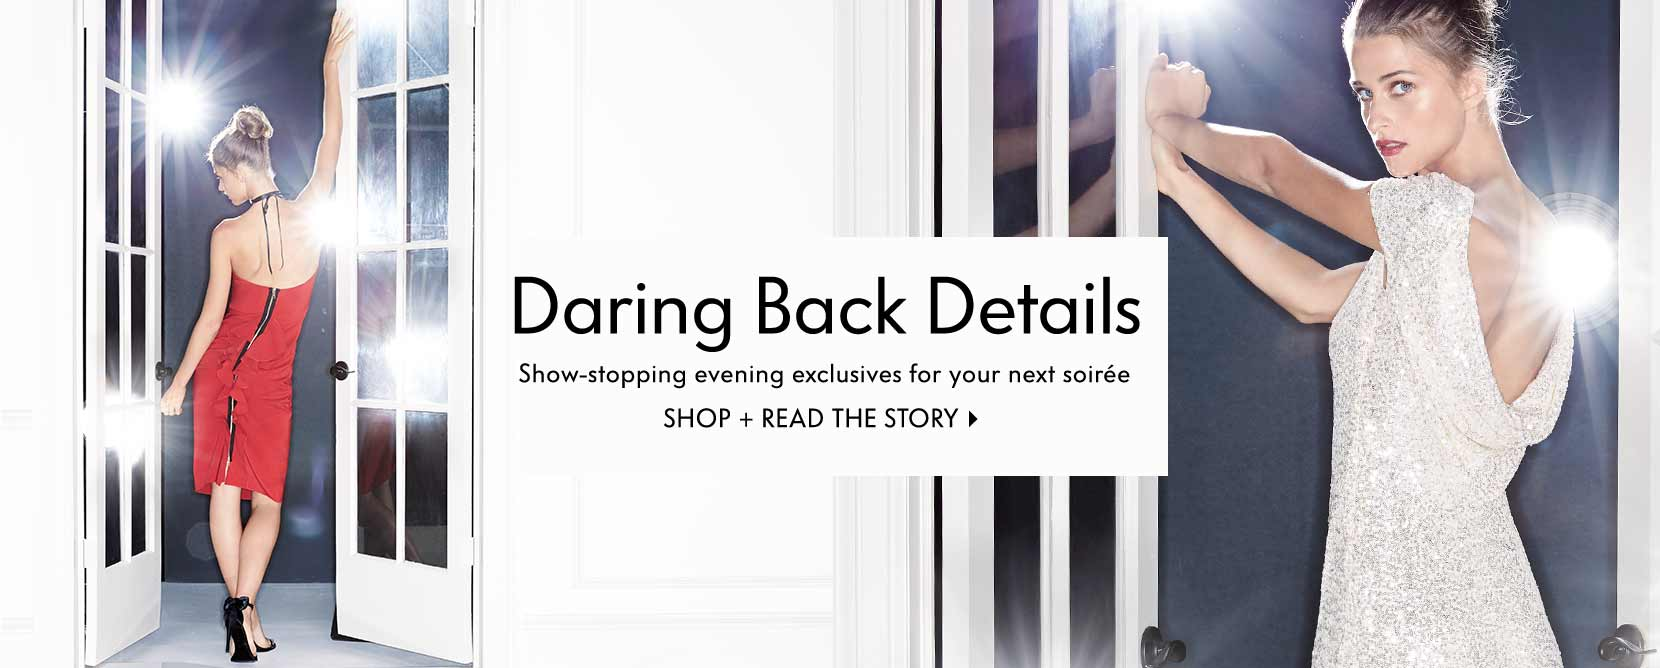 Daring Back Details Show-stopping evening exclusives for your next soir??e shop + read the story